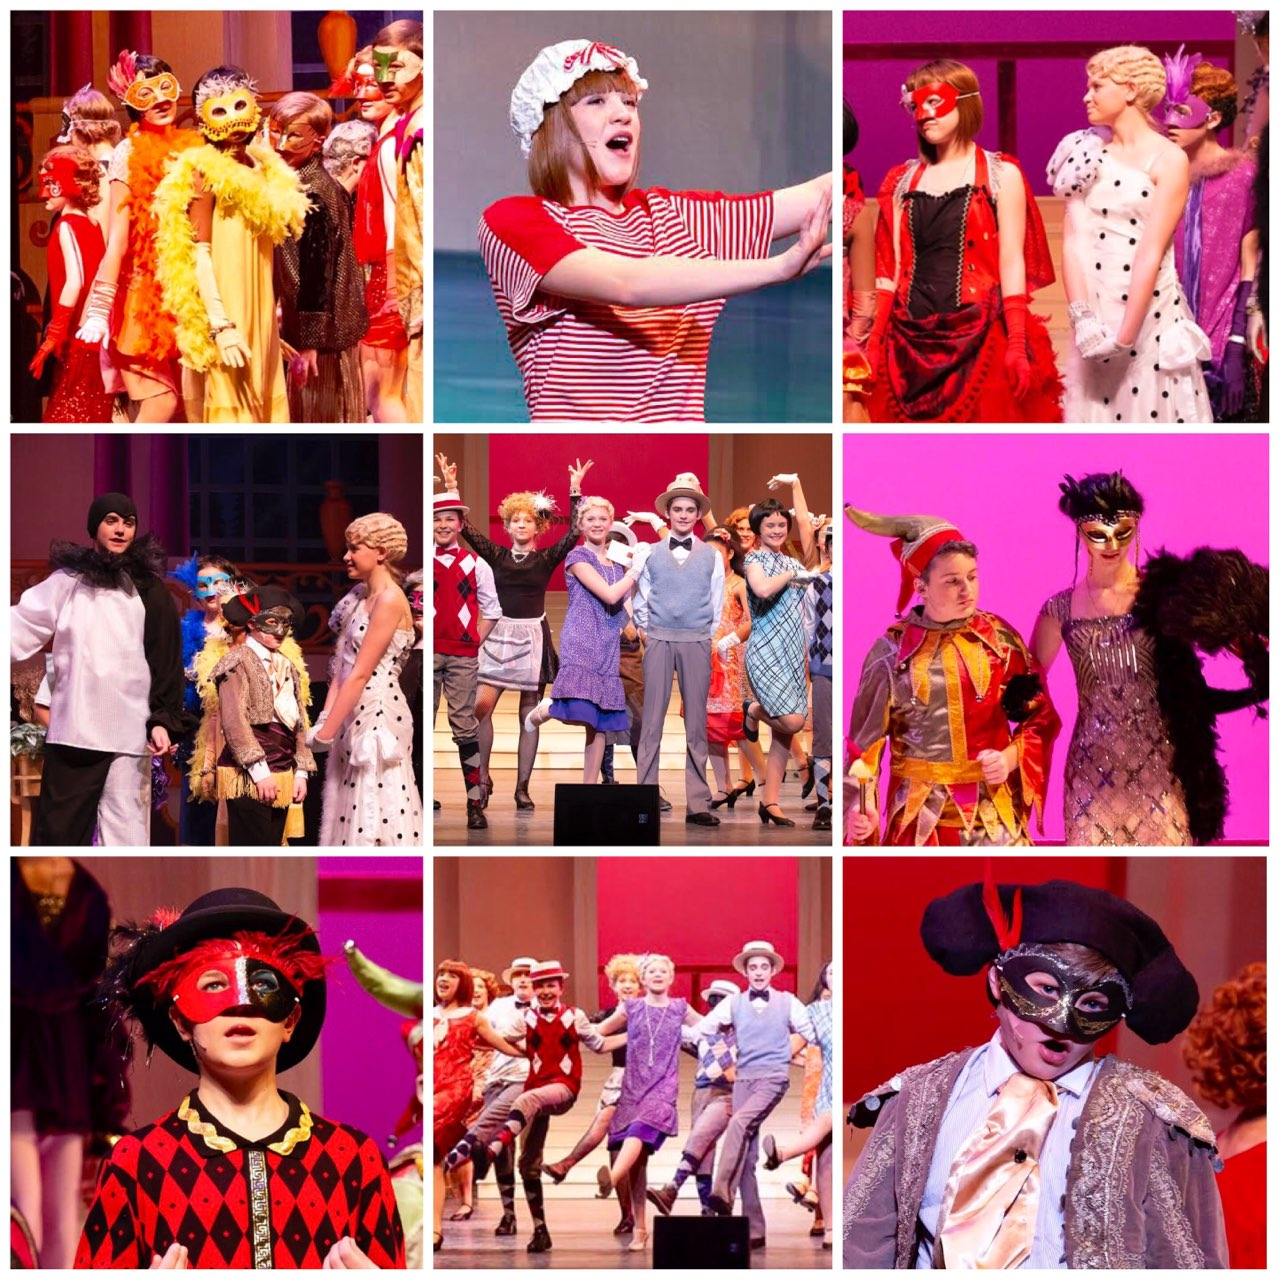 Collage of photos from The Boy Friend production